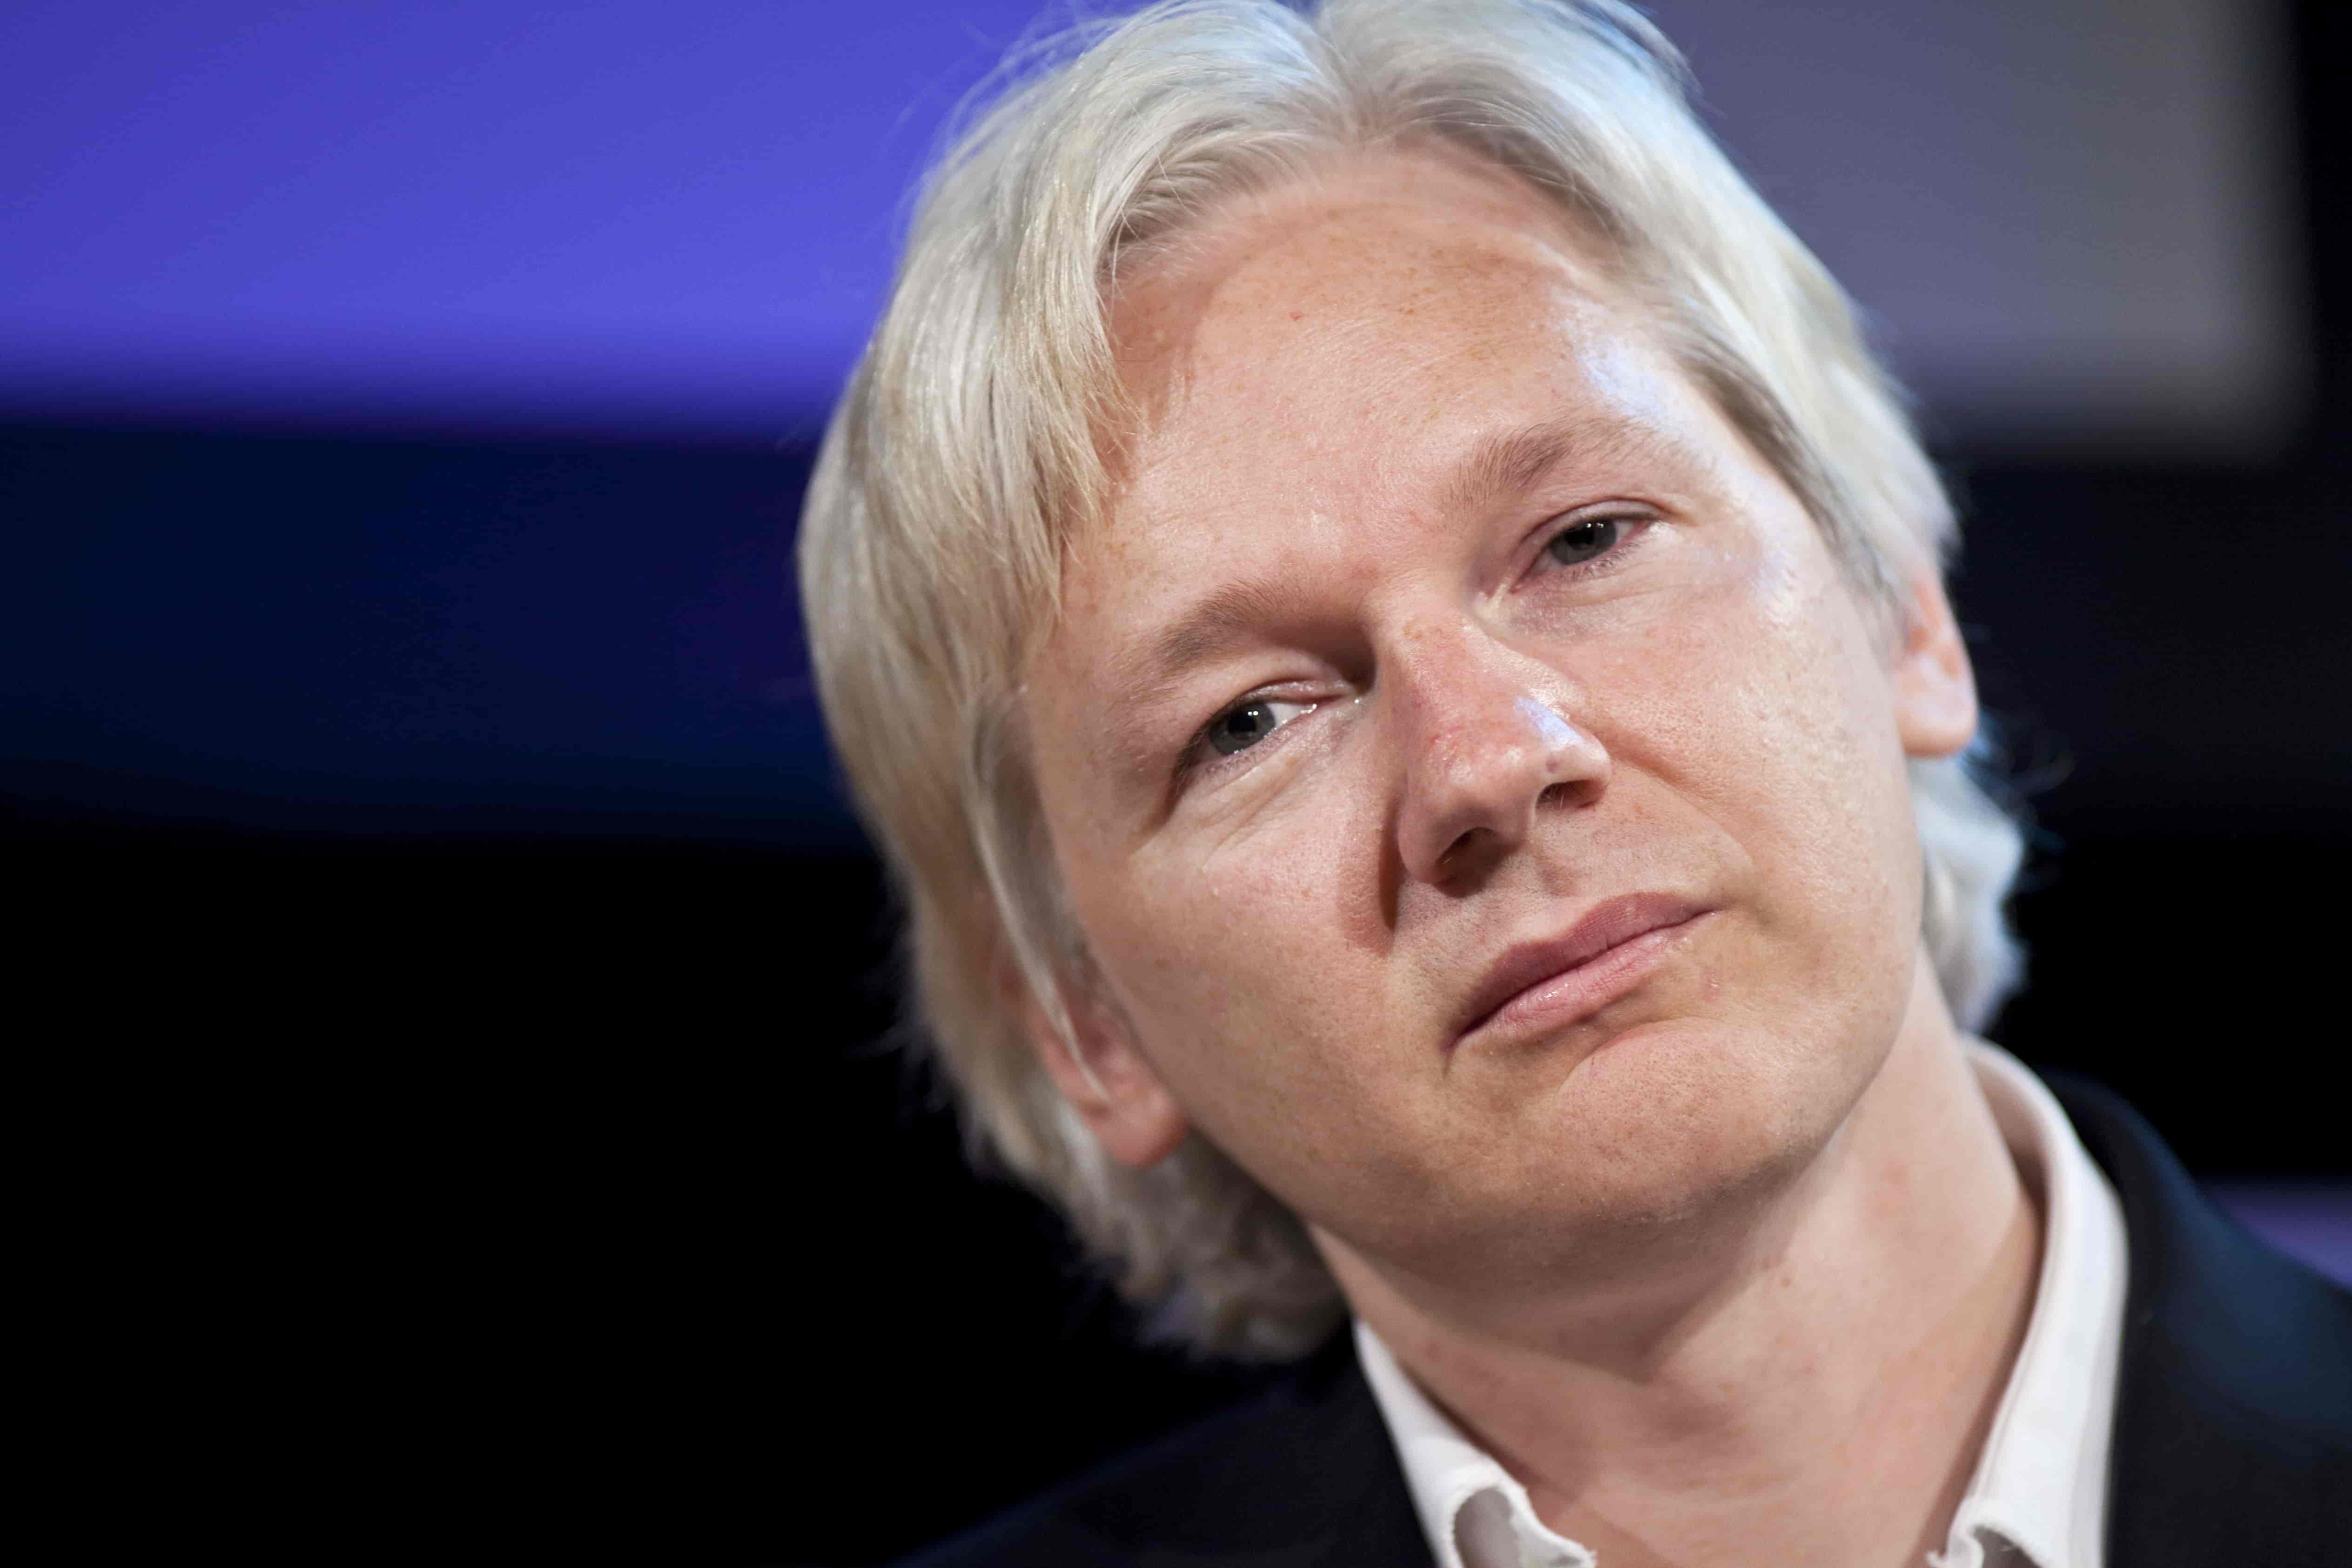 ARCHIVIERT_269023_Julian Assange_c_David Levenson/Getty Images